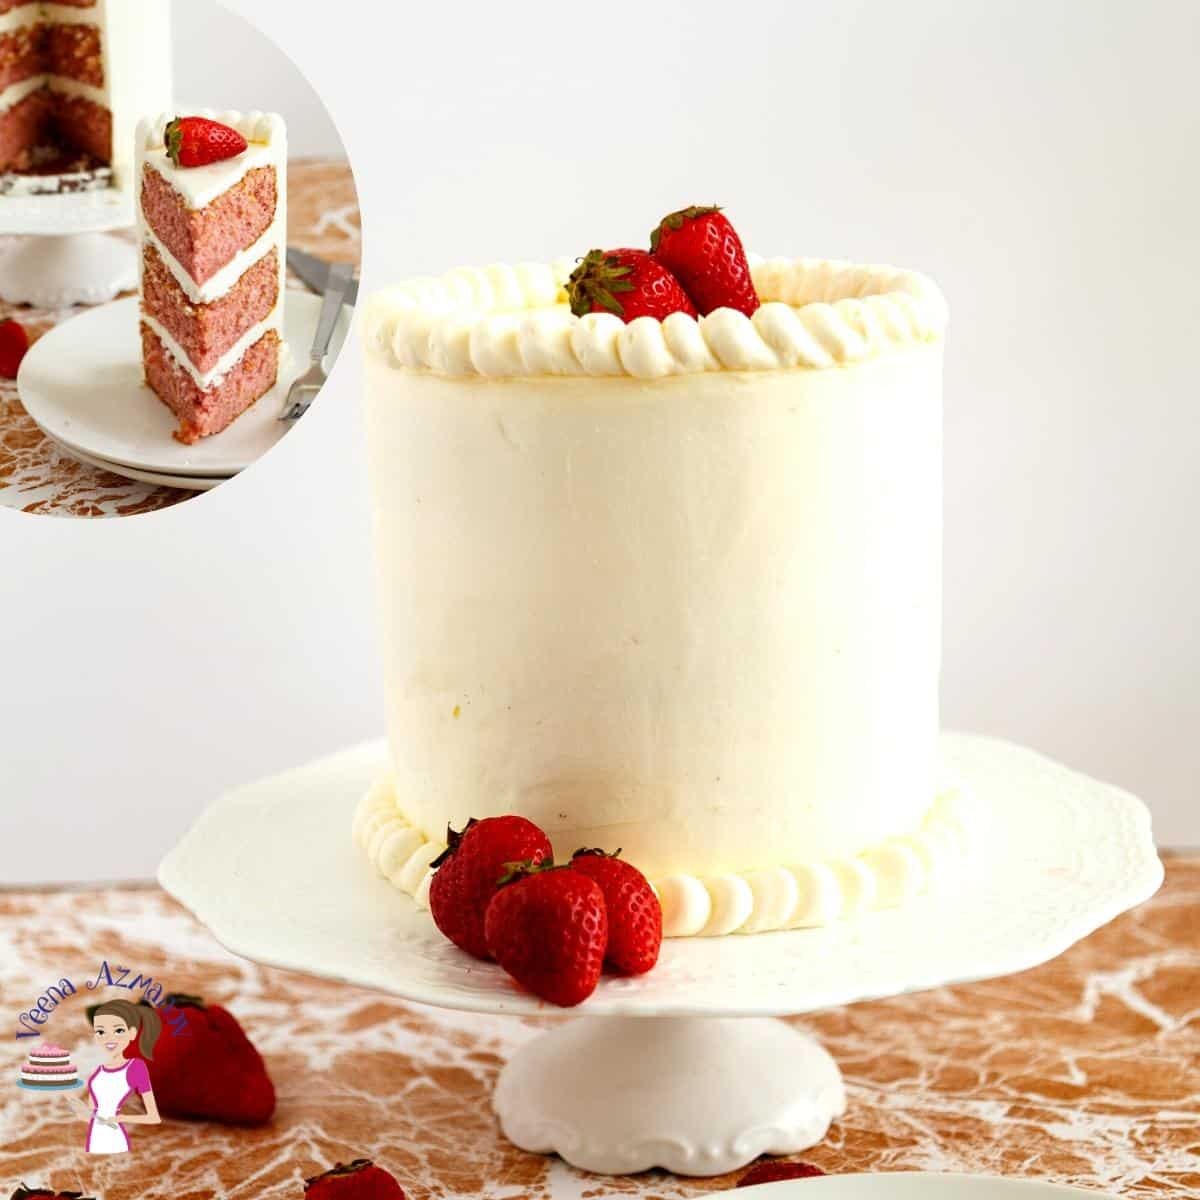 Homemade Layer Cake with fresh Strawberries and American Buttercream